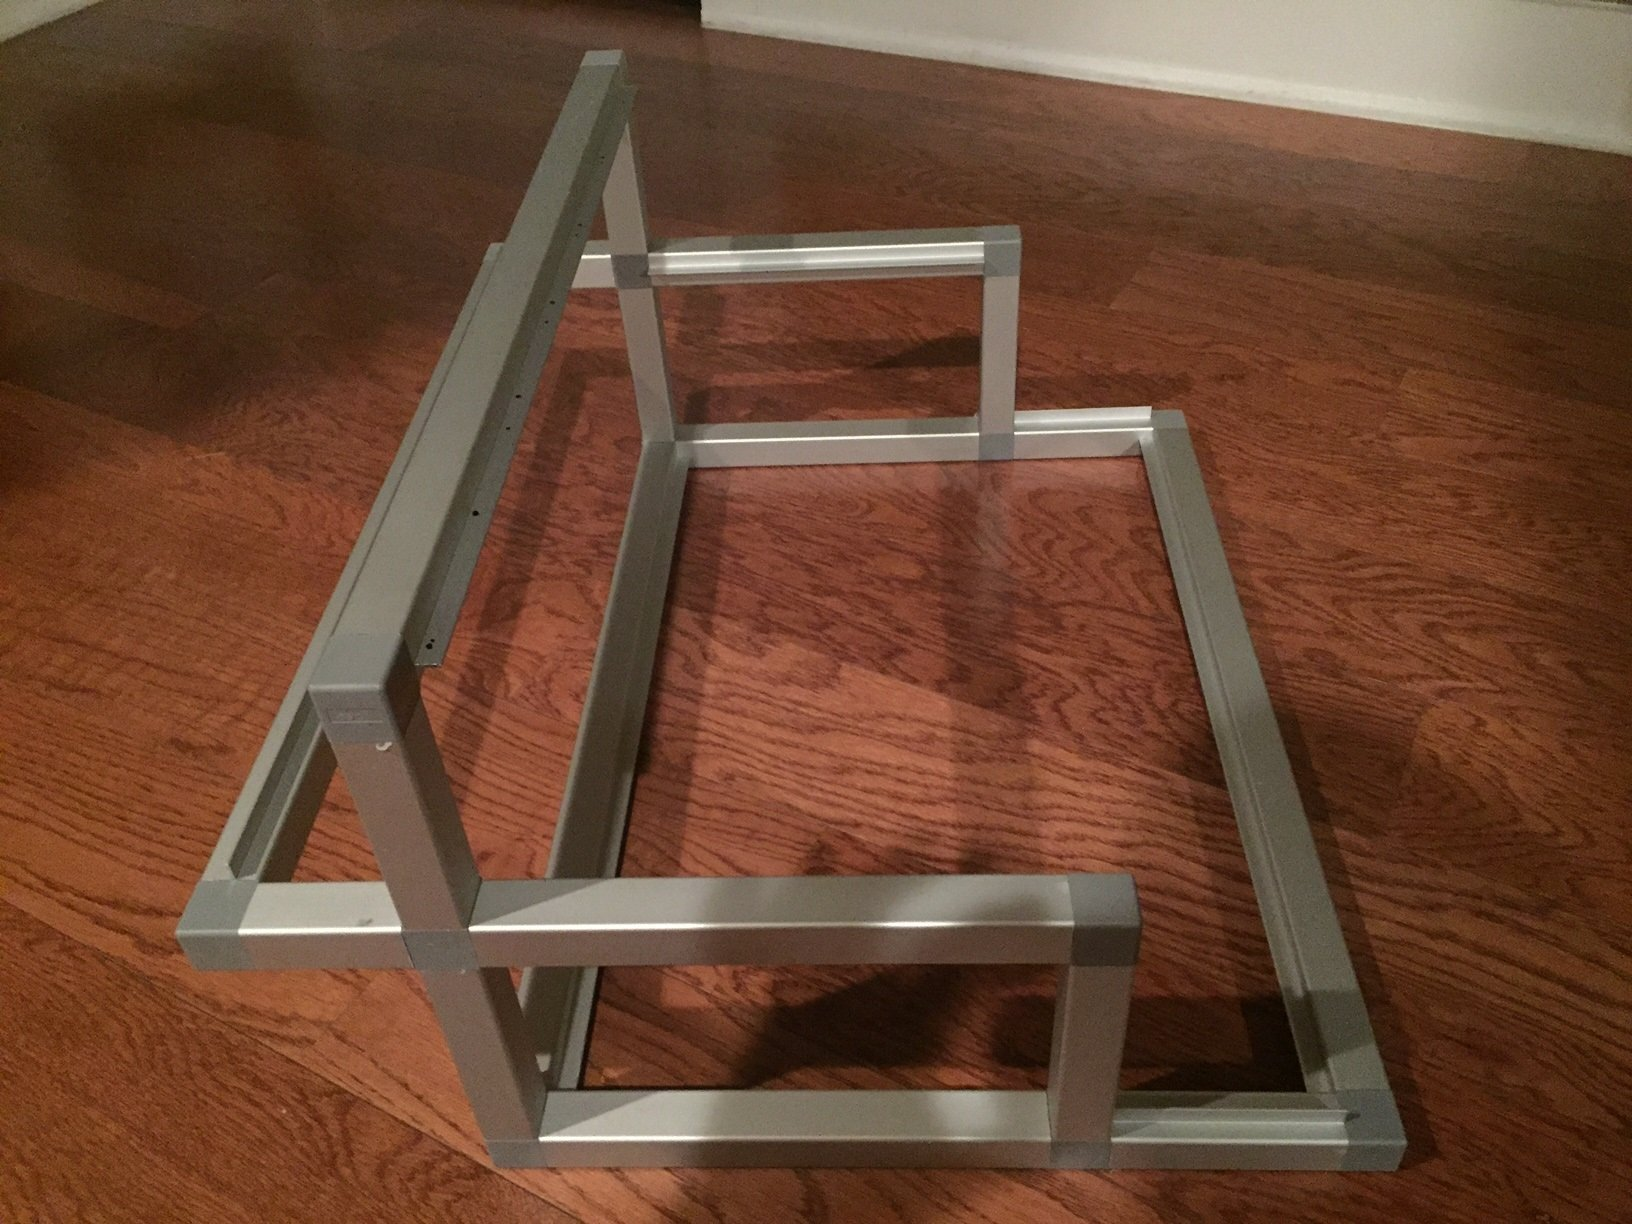 Rig Case Designs Ethereum Community Forum Rak Untuk Mining But This Is Not Included So Its Up To Your Preference Only A Hammer And About 10 Mins Needed Get Rock Solid Together As Seen In The